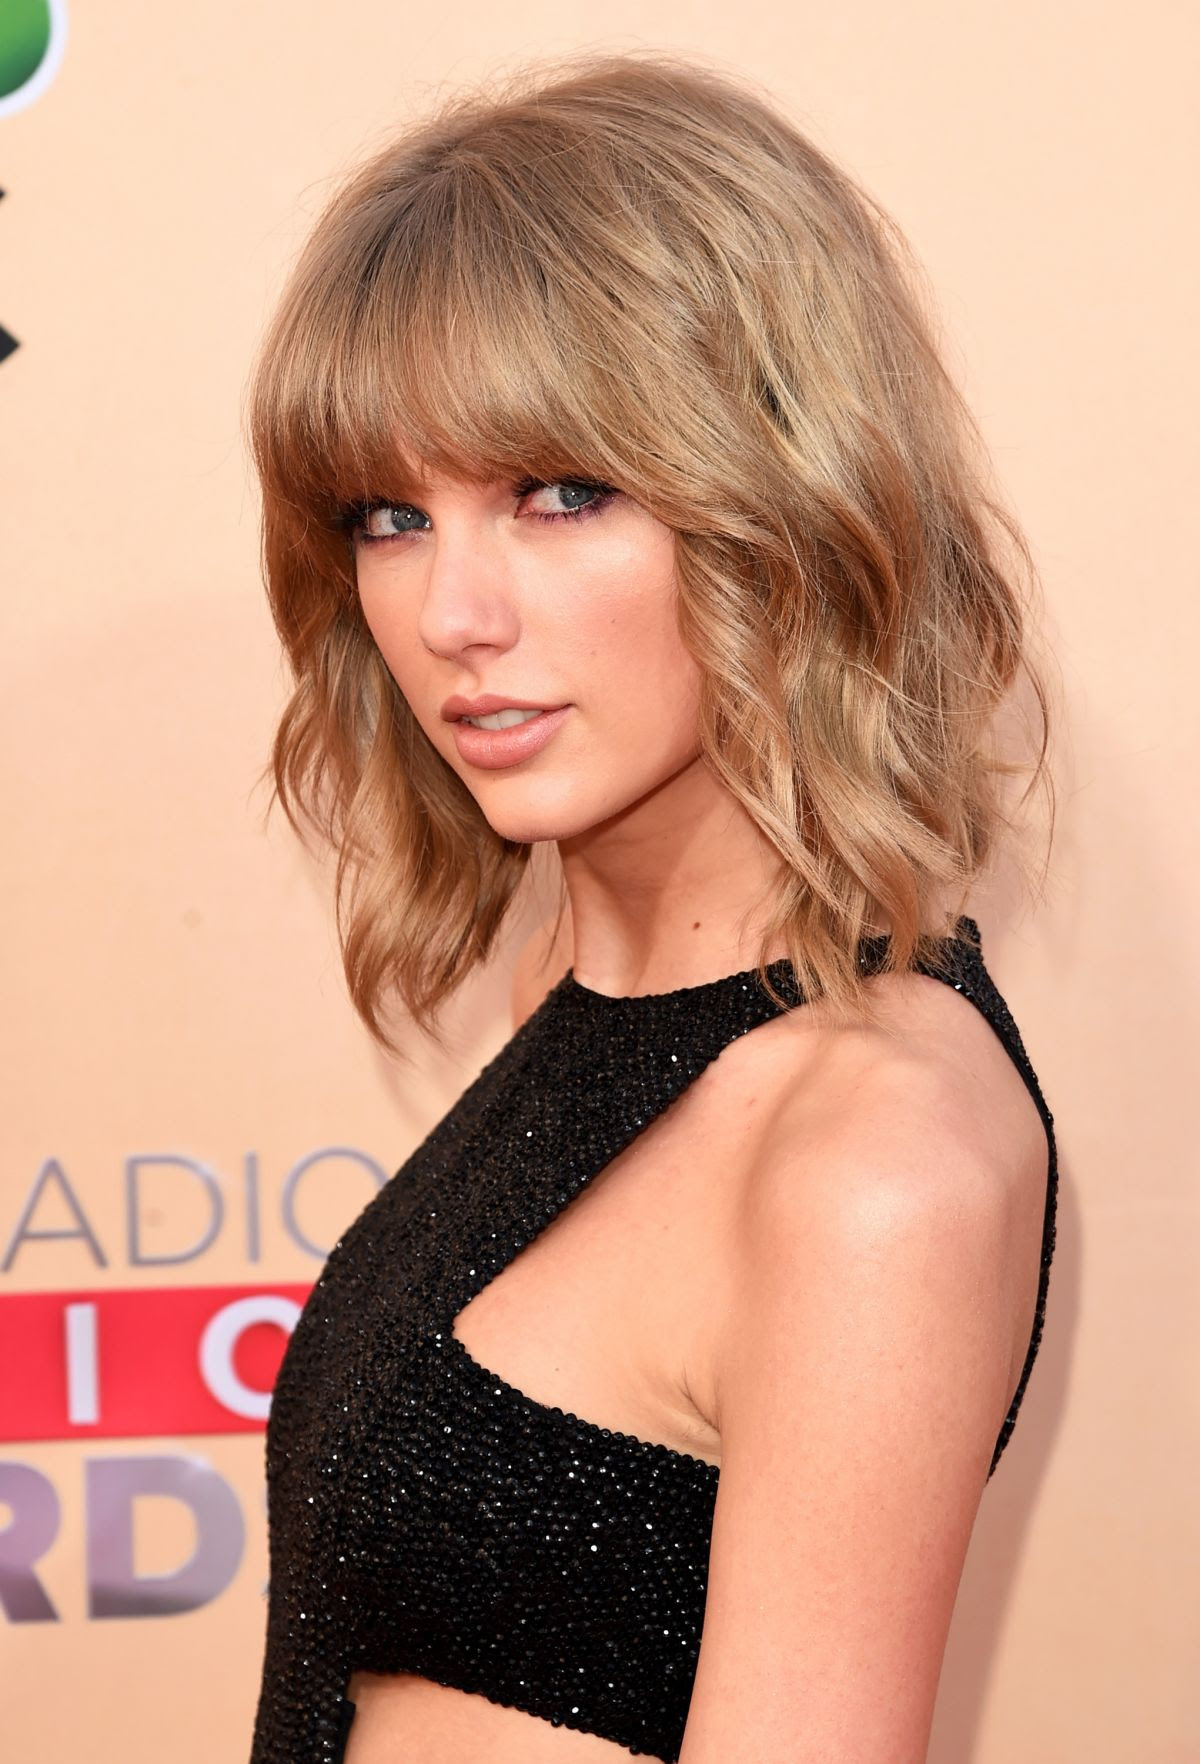 TAYLOR SWIFT at 2015 iHeartRadio Music Awards in Los Angeles